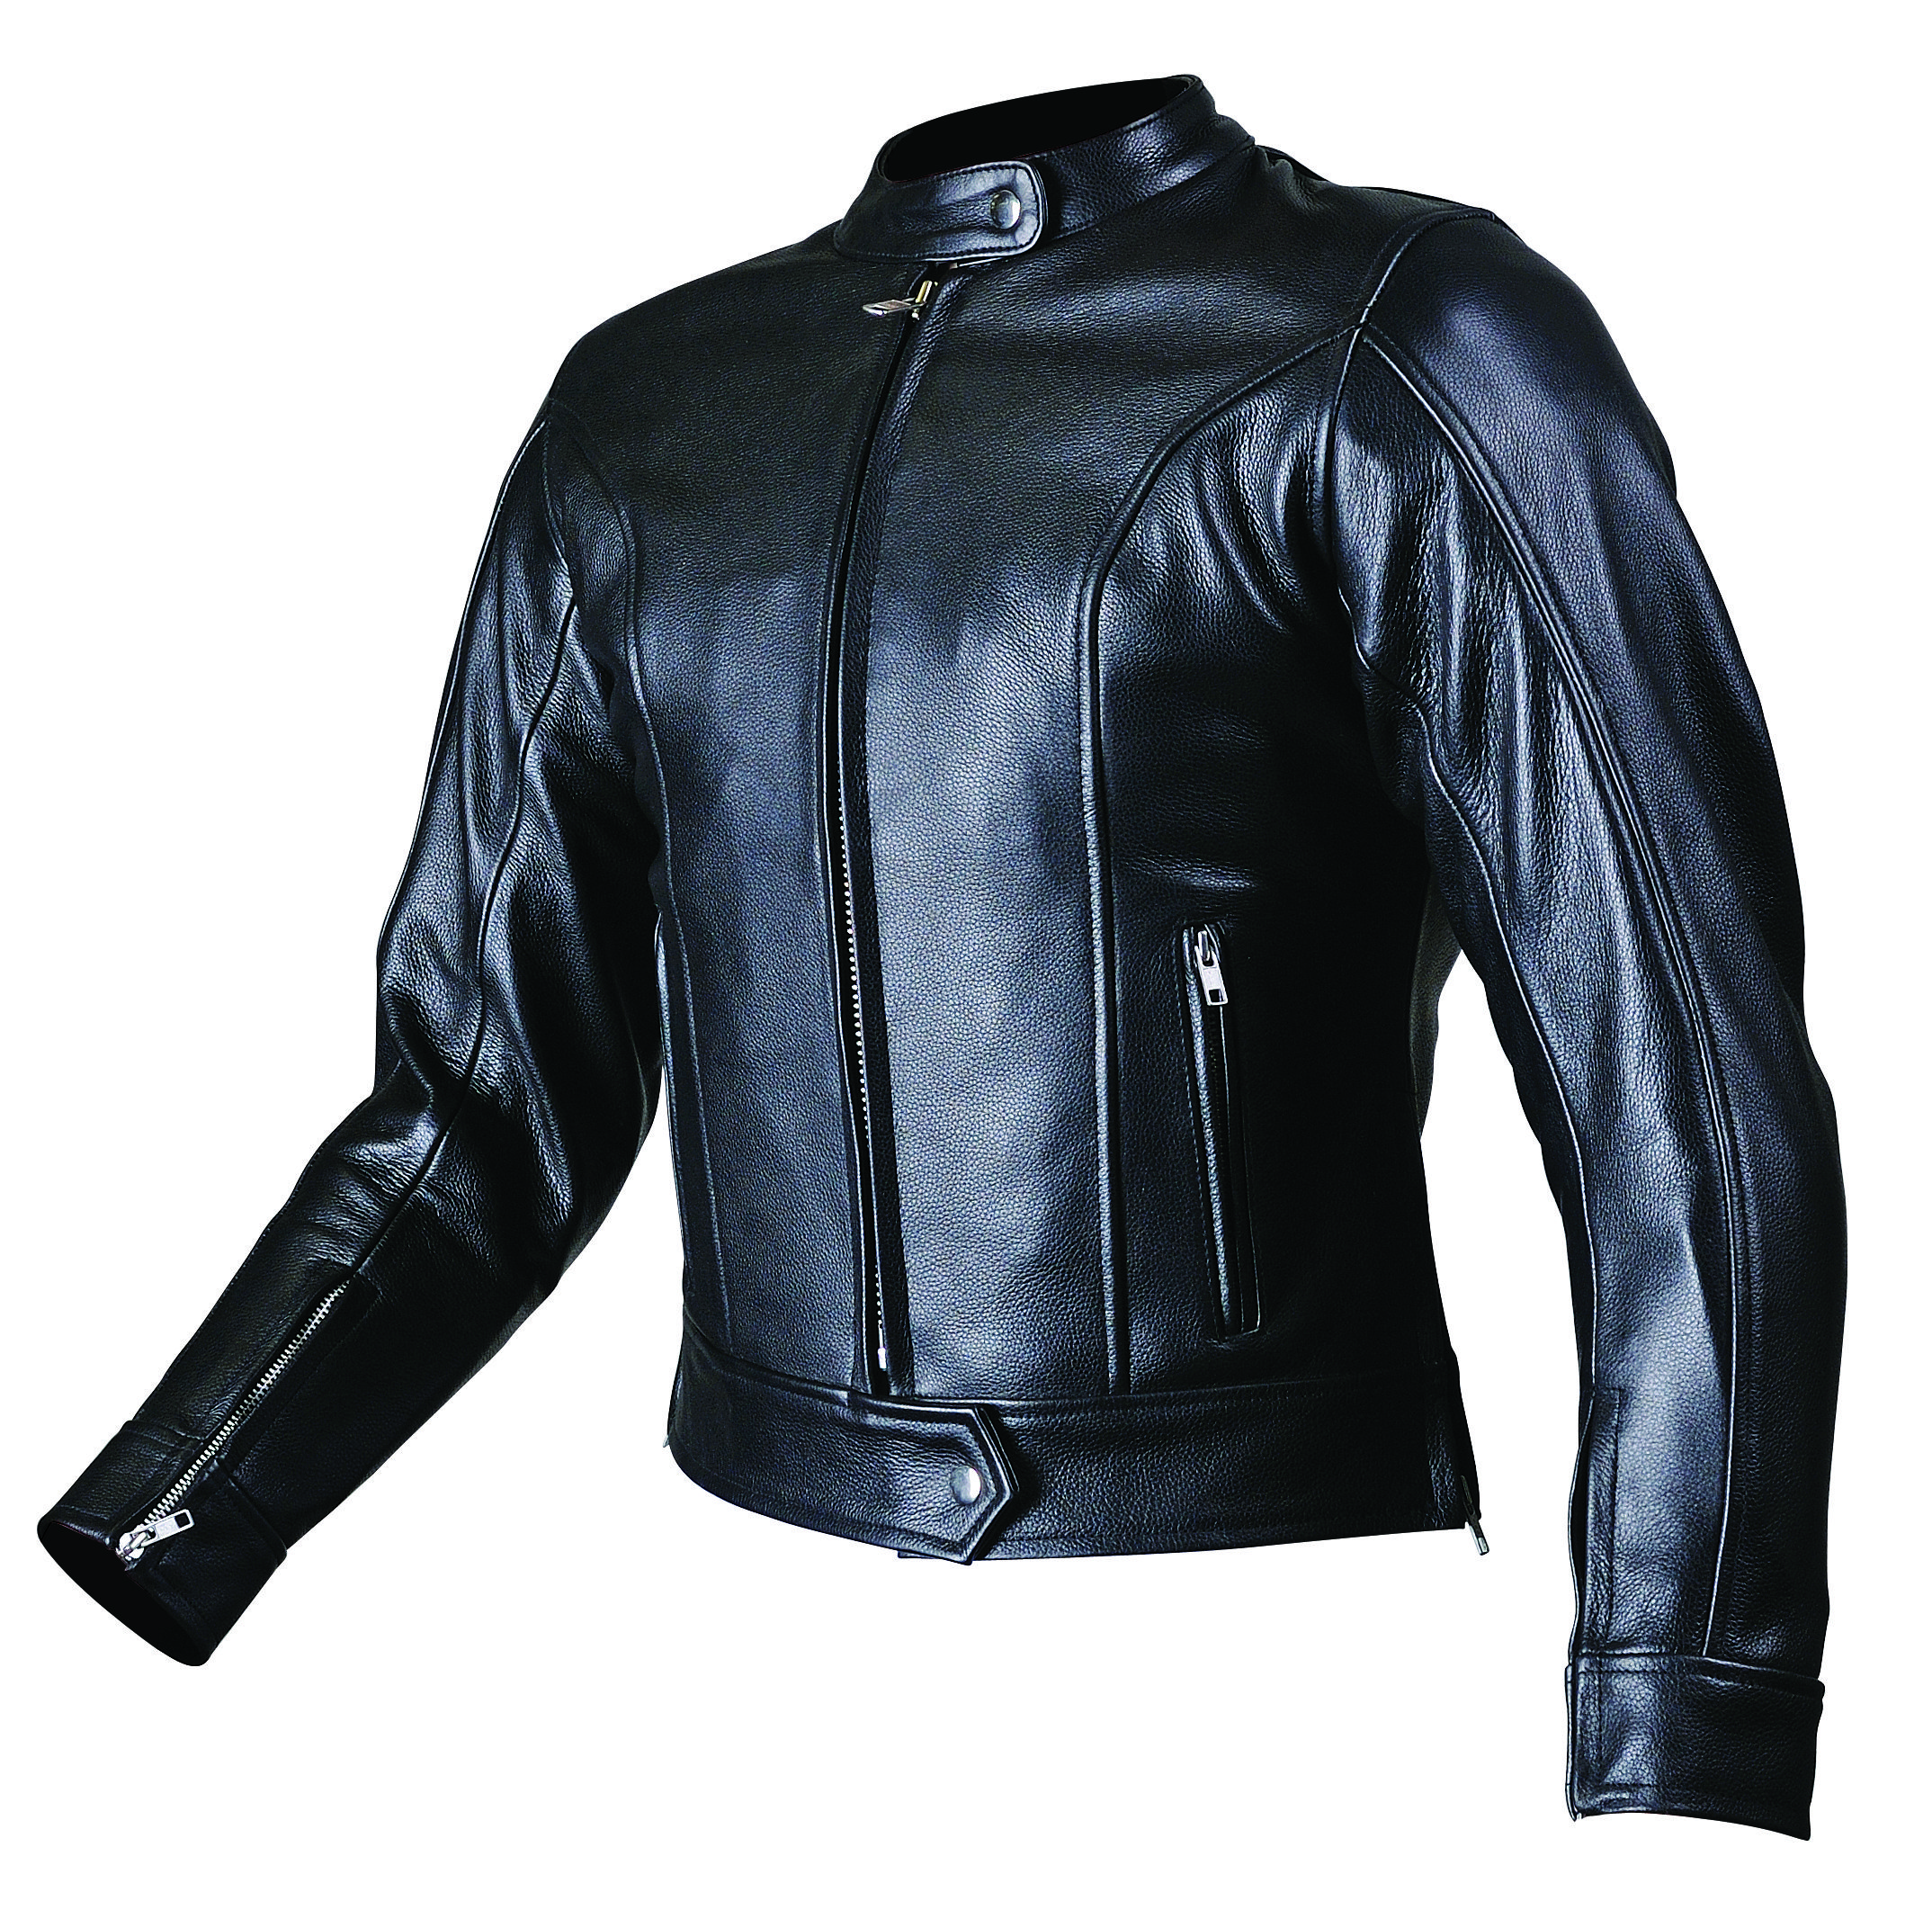 Agvsport Ivy Ladies Leather Jacket Constructed Of The Finest Premium Soft 1mm 1 1mm Full Grain Cowhide Leather Leather Jackets Women Leather Jacket Jackets